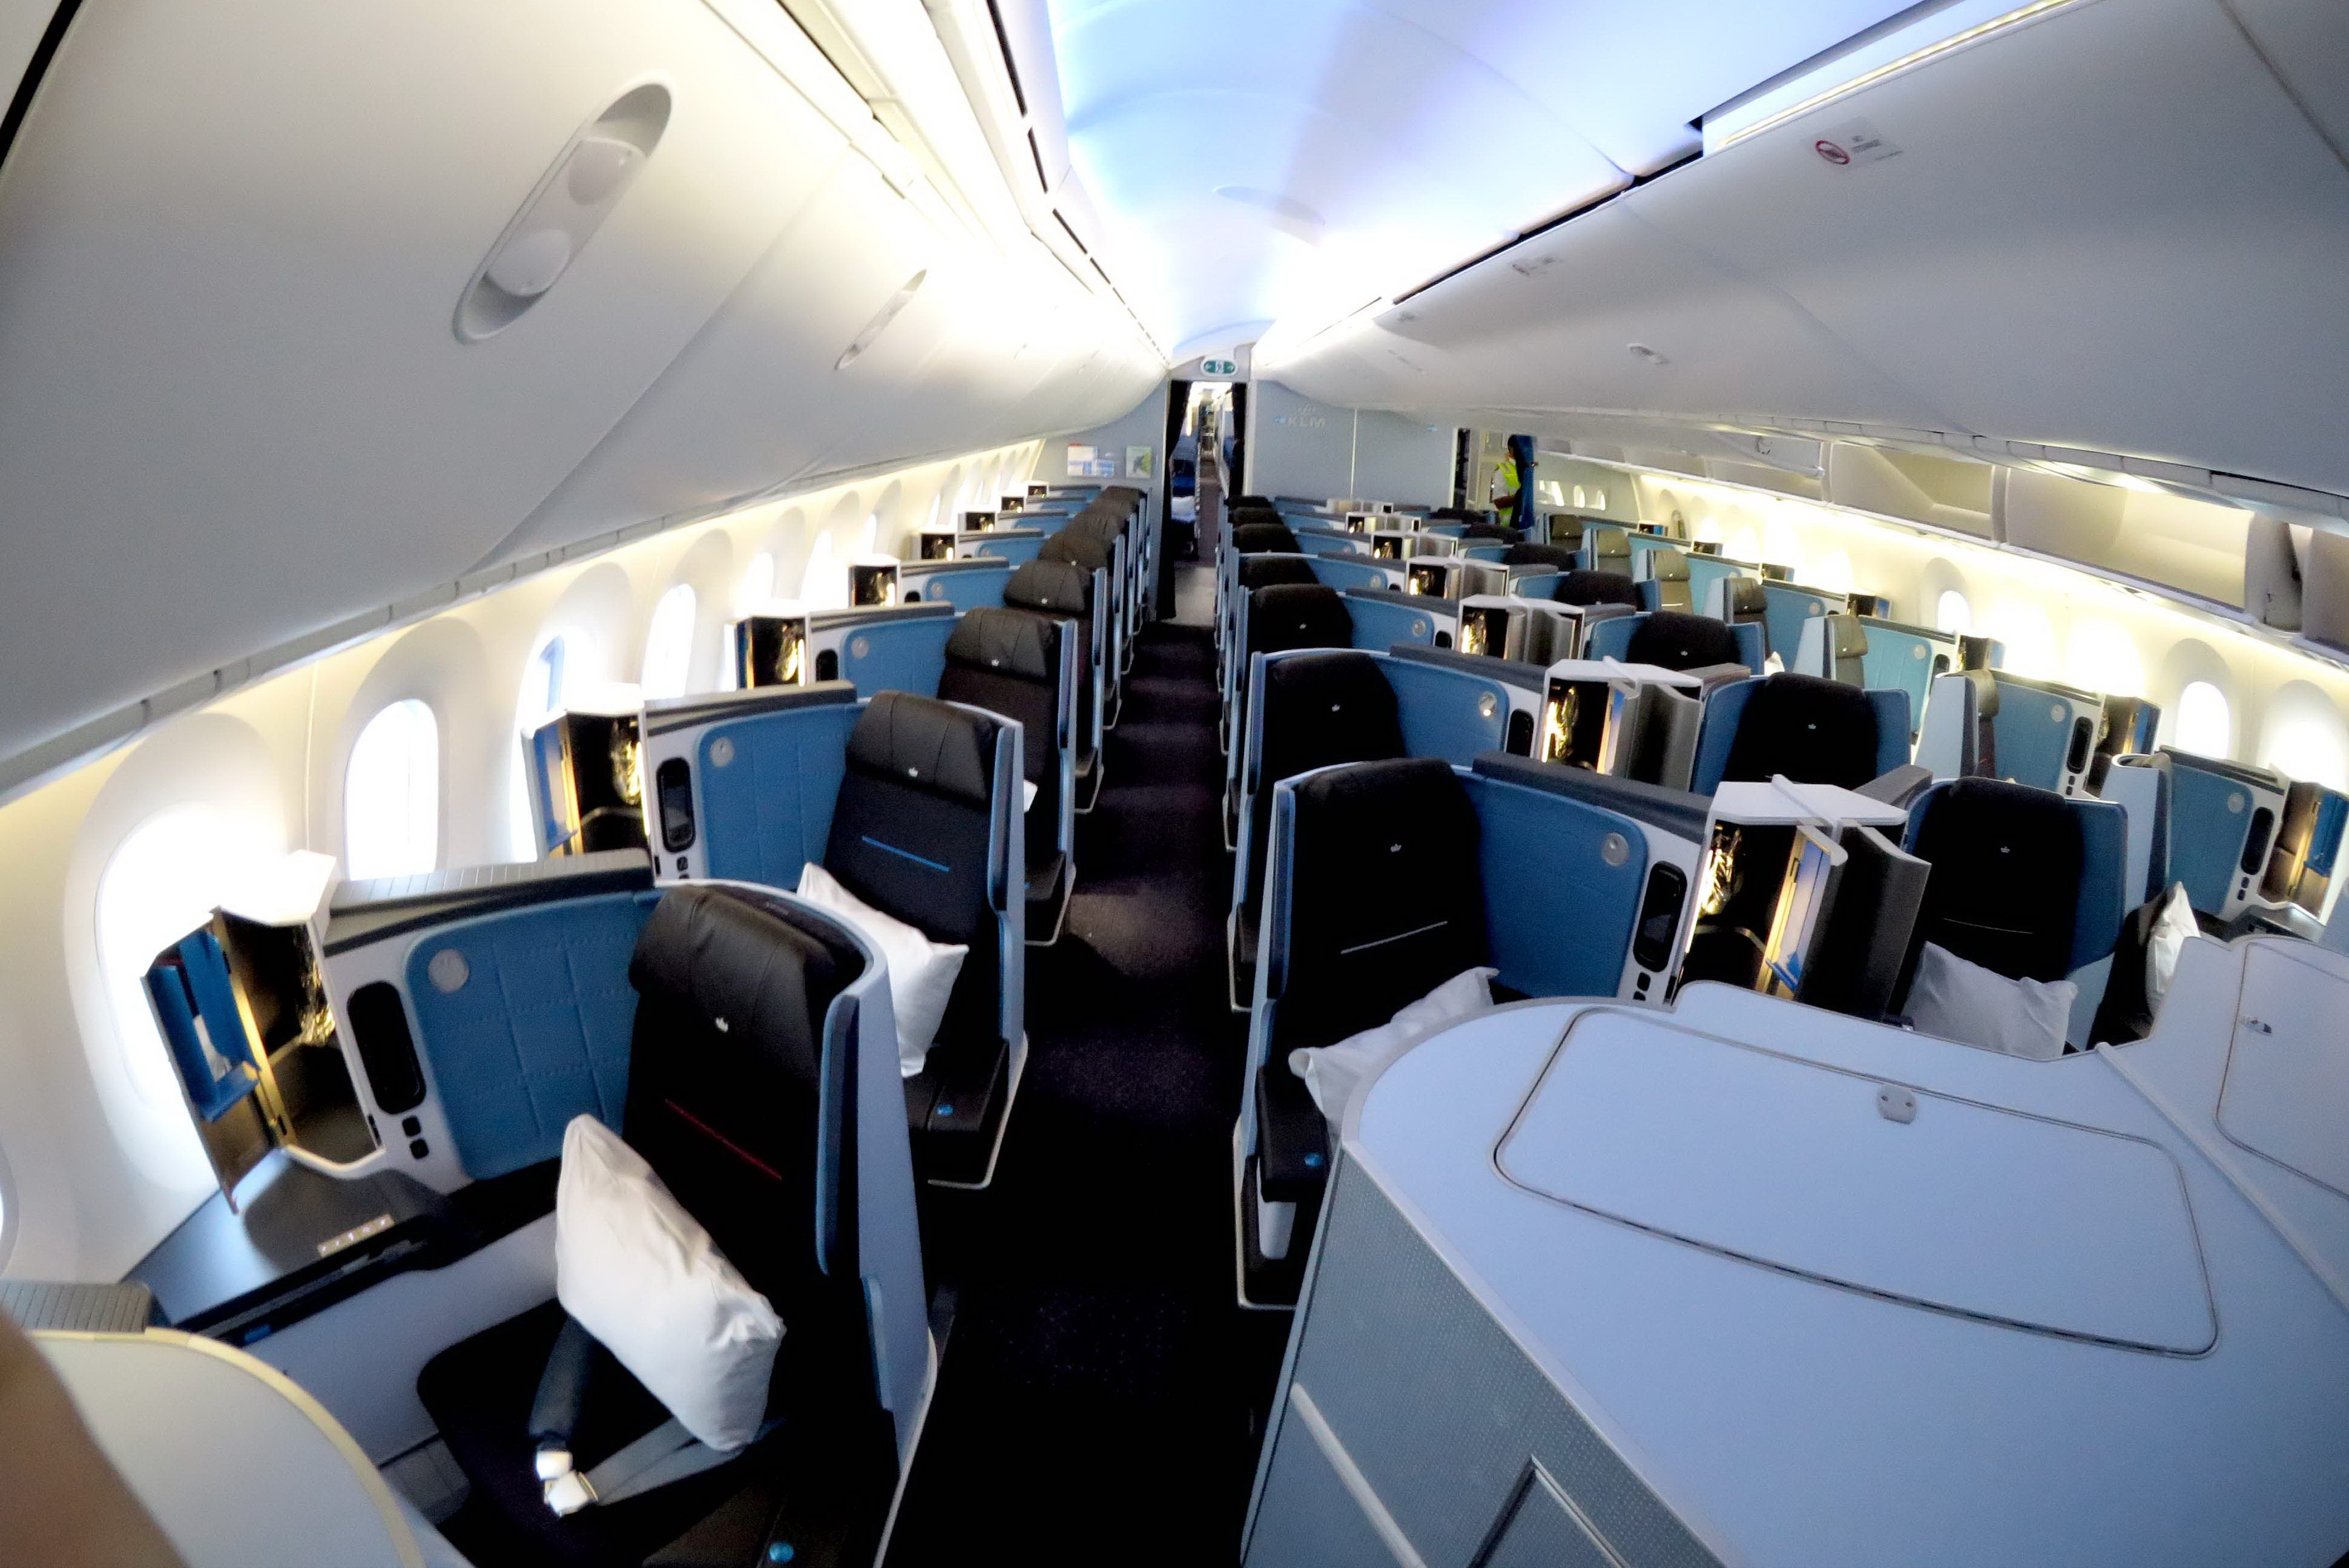 Technology trends in 2017 - Agents Get Up Close Look At Klm S 787 Dreamliner Travelpress